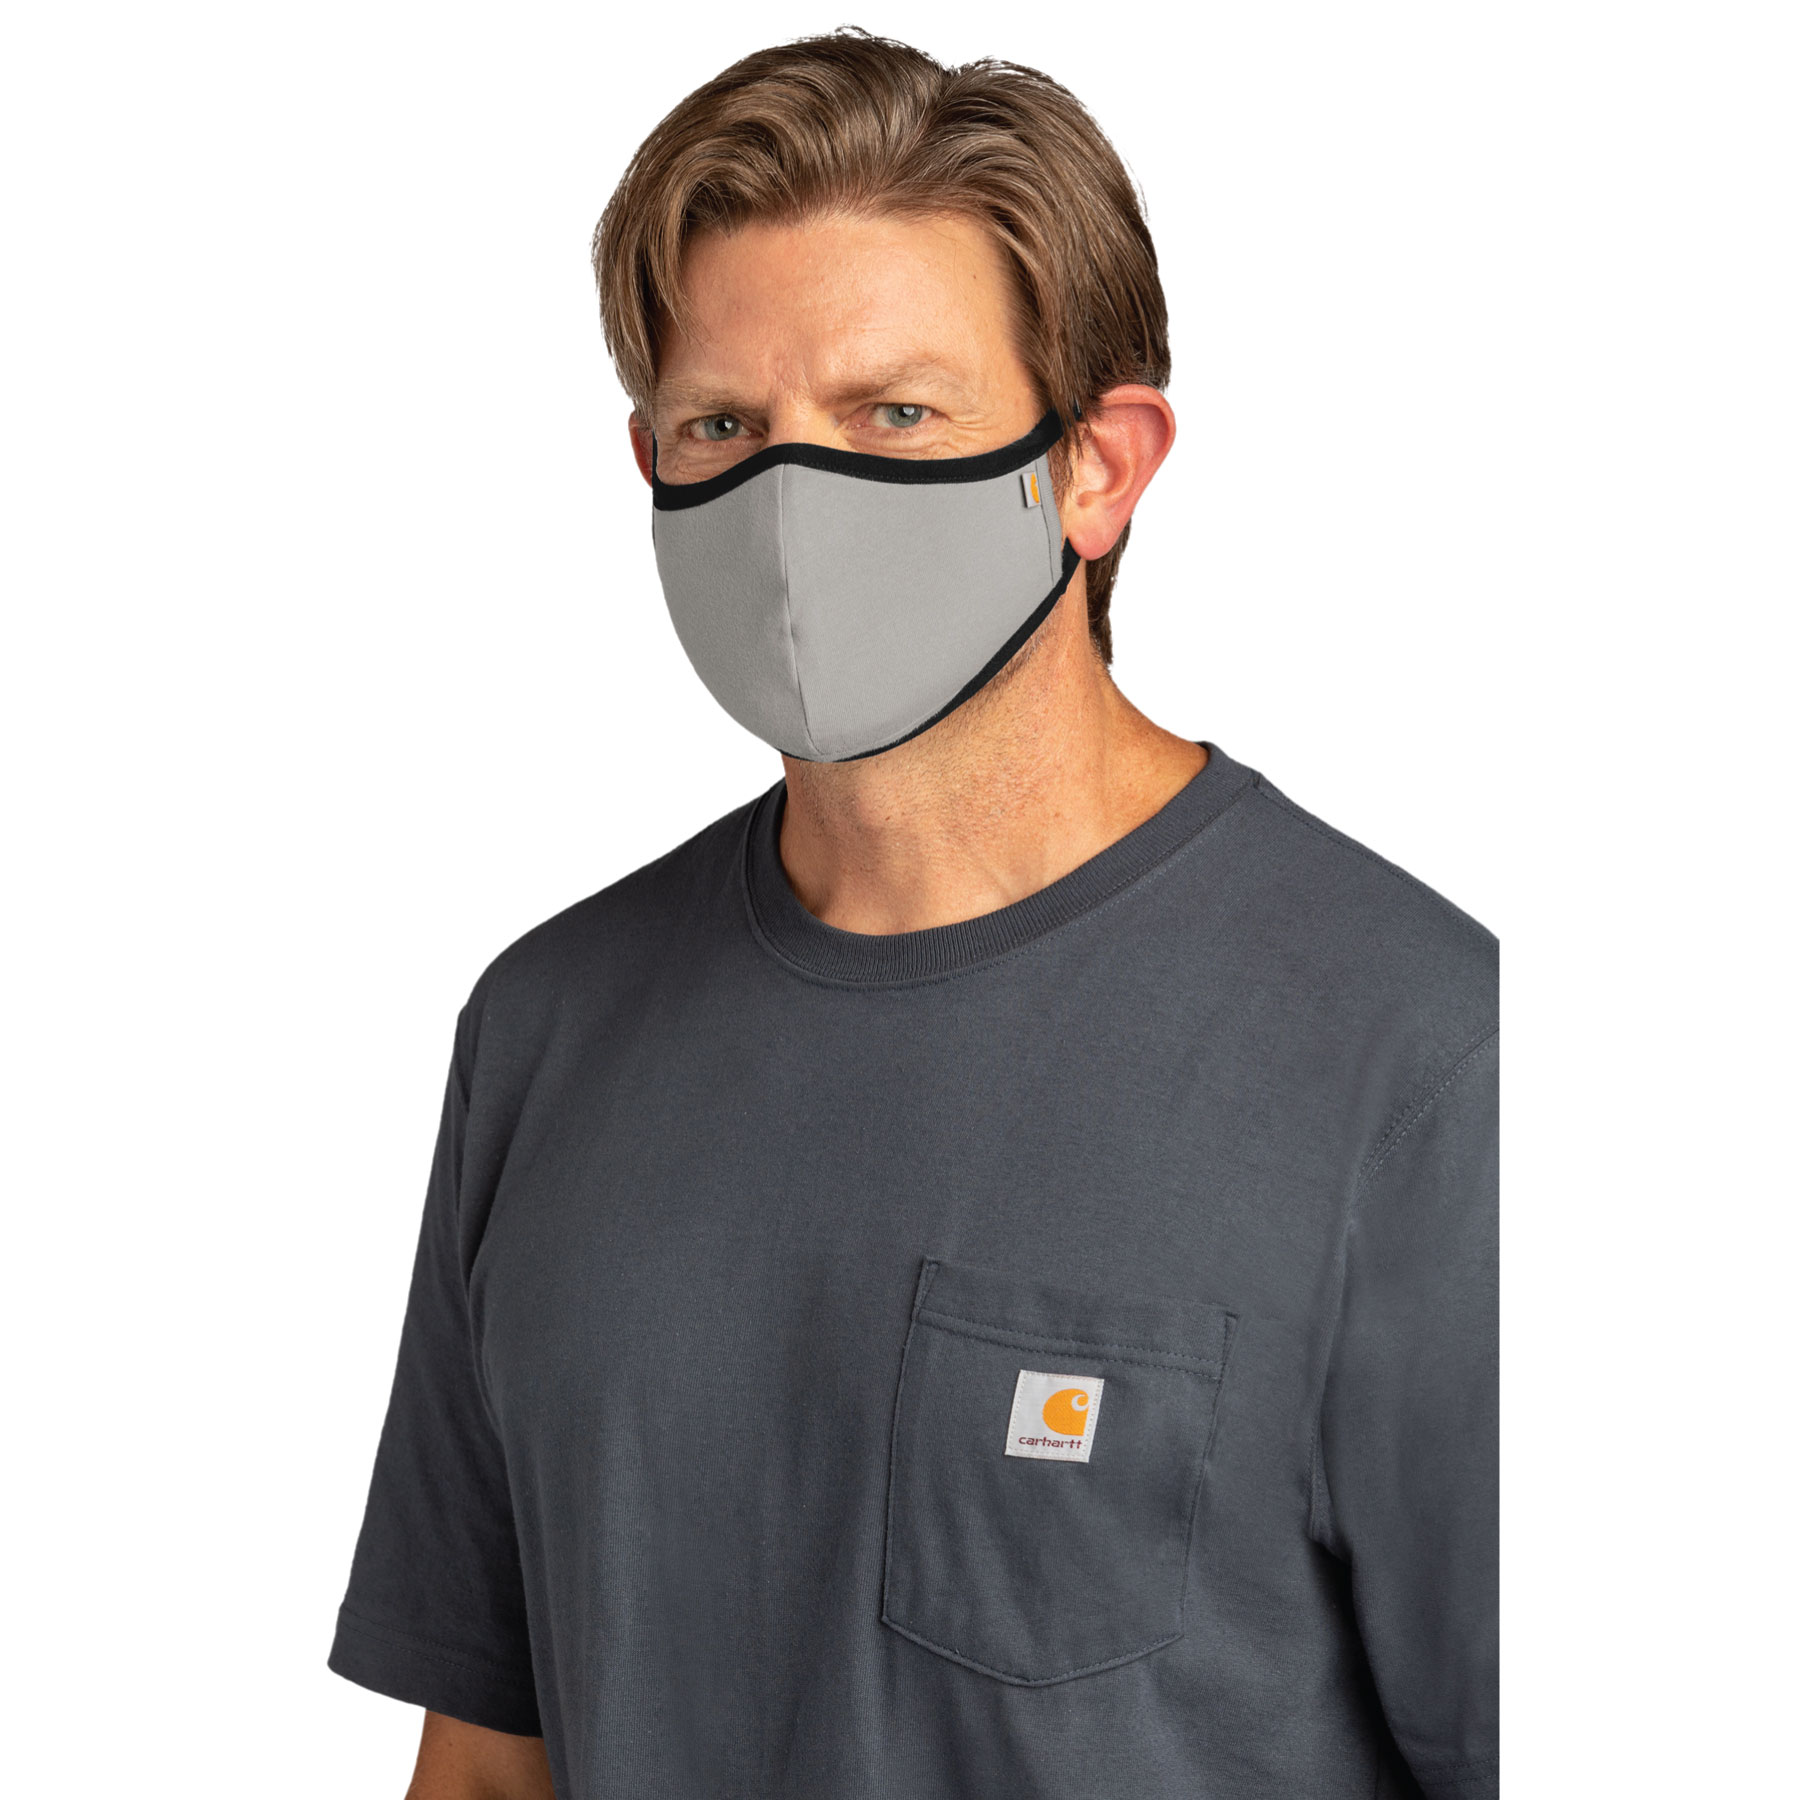 In Stock: Carhartt® 2 Layer Mask - RTS4793